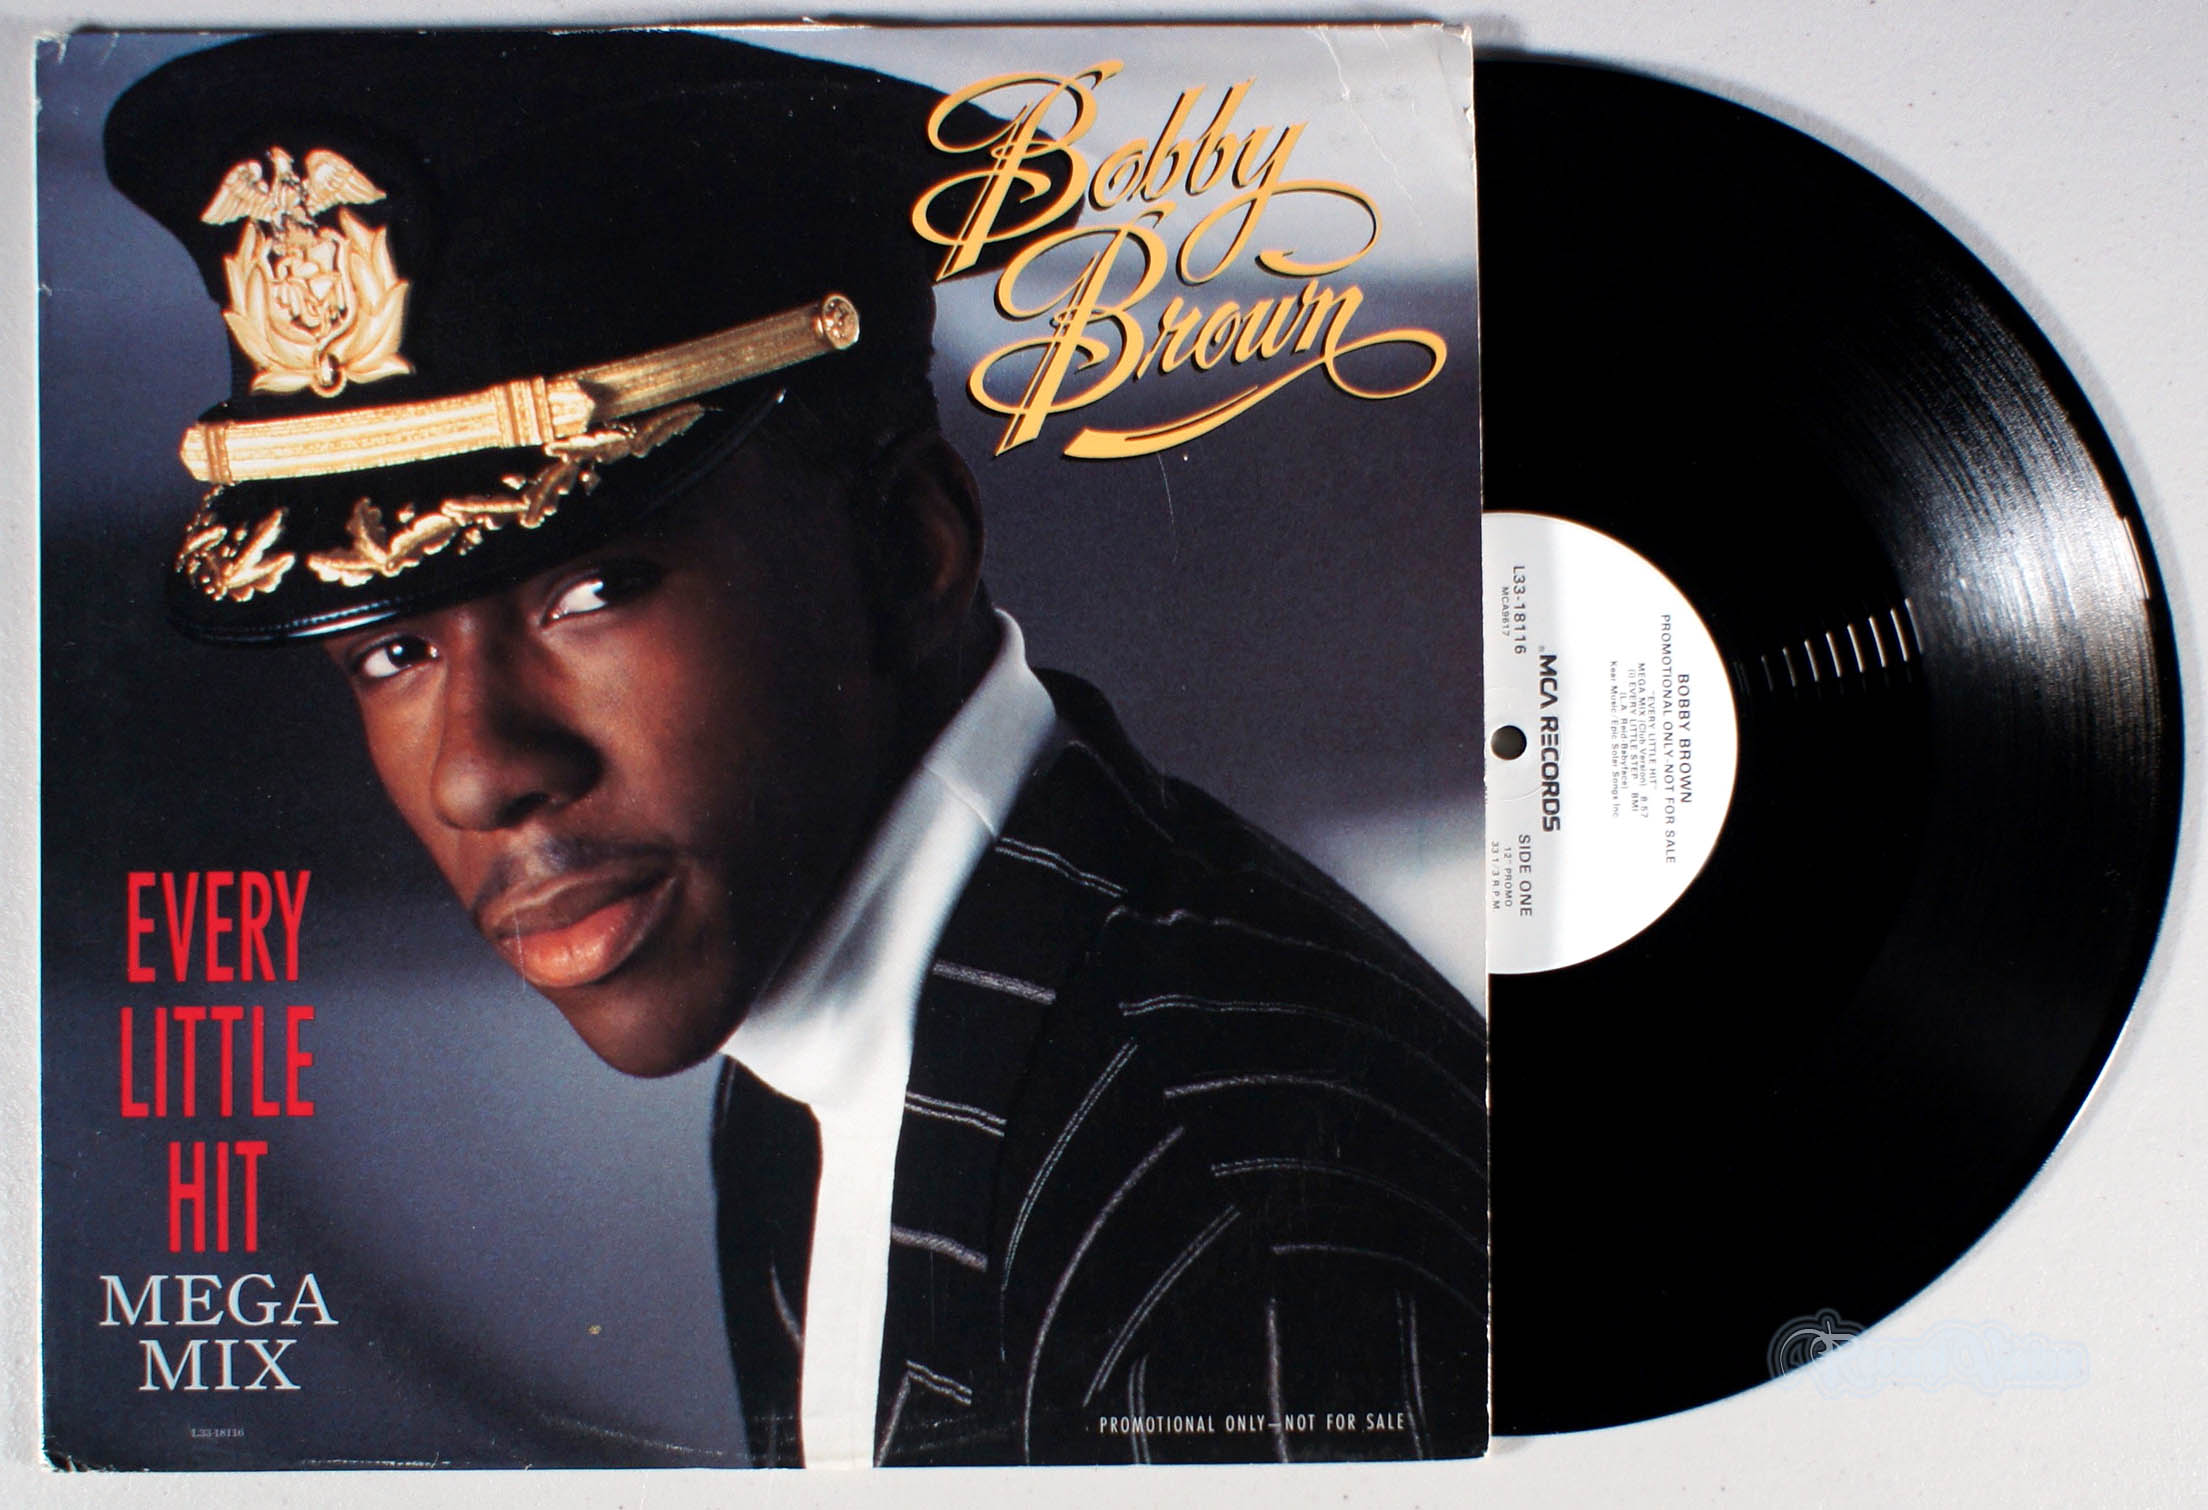 BOBBY BROWN - Every Little Hit - 12 inch x 1